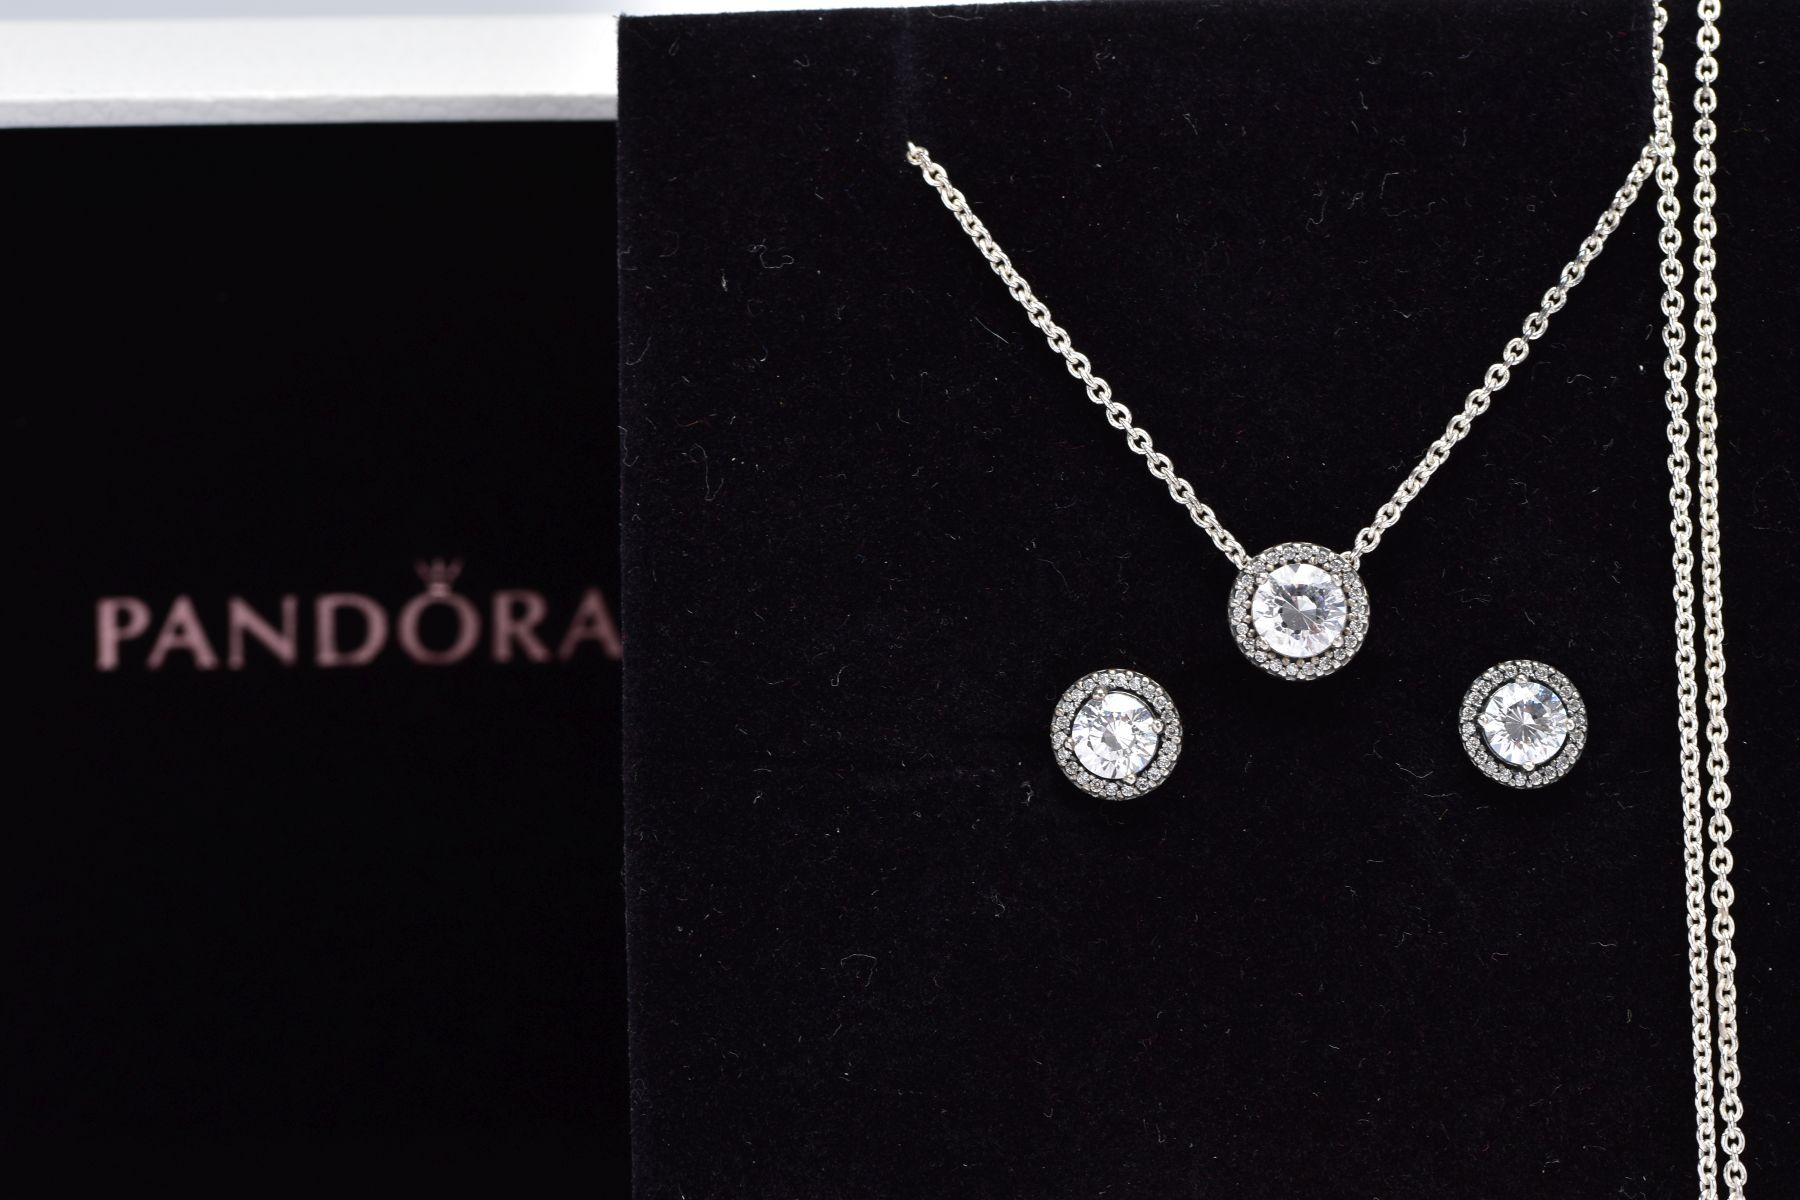 A PANDORA NECKLACE AND EARRING GIFT SET, the necklace designed with a cubic zirconia halo set